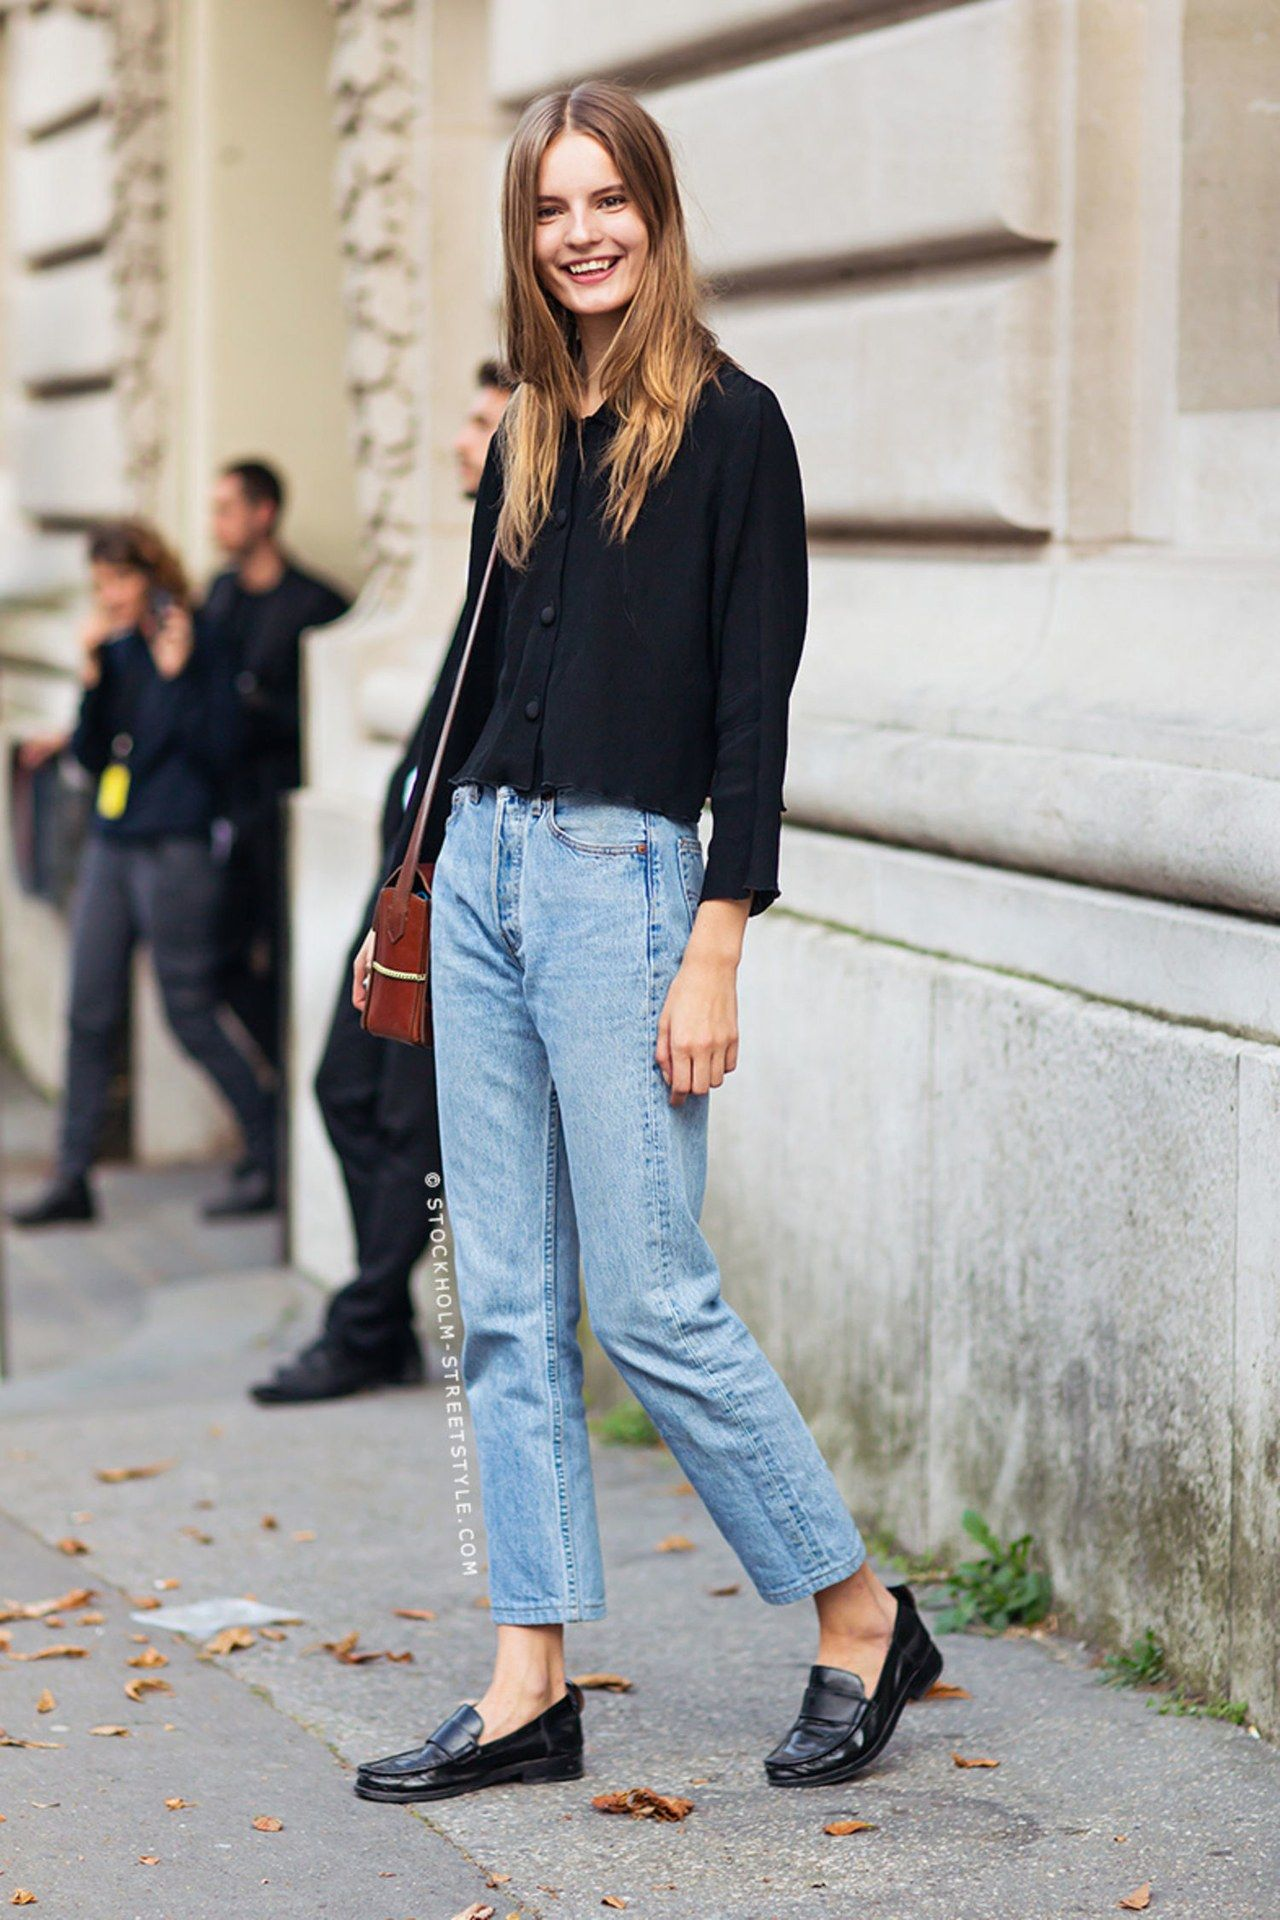 Image result for masculine loafer street style | Denim street style, Fashion clothes women, Black women fashion